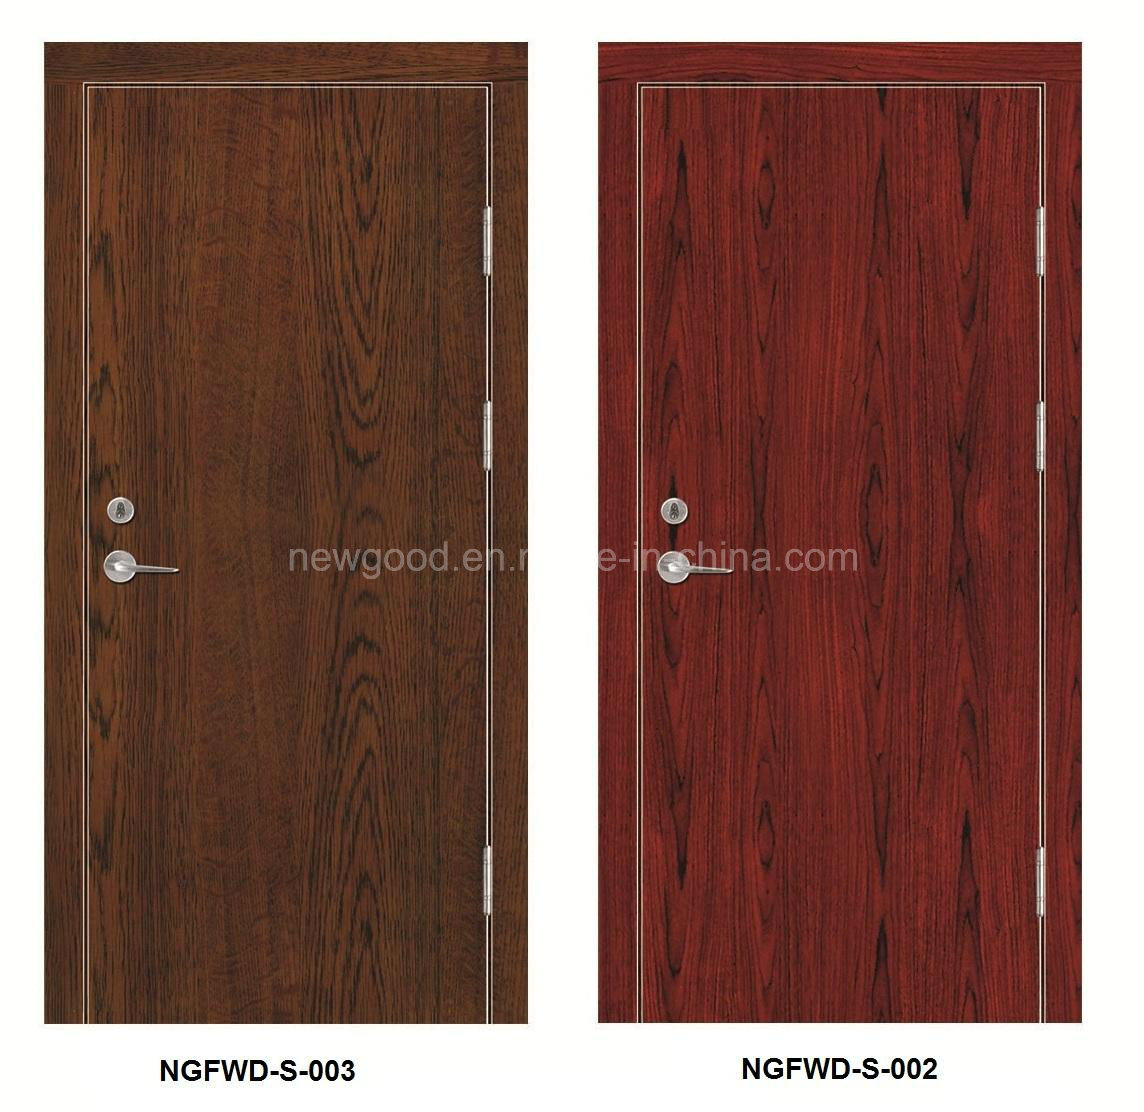 Solid Wooden Interior Door, Fire Rated Wooden Door, Natural Wood Veneered Fire Rated Wooden Doors